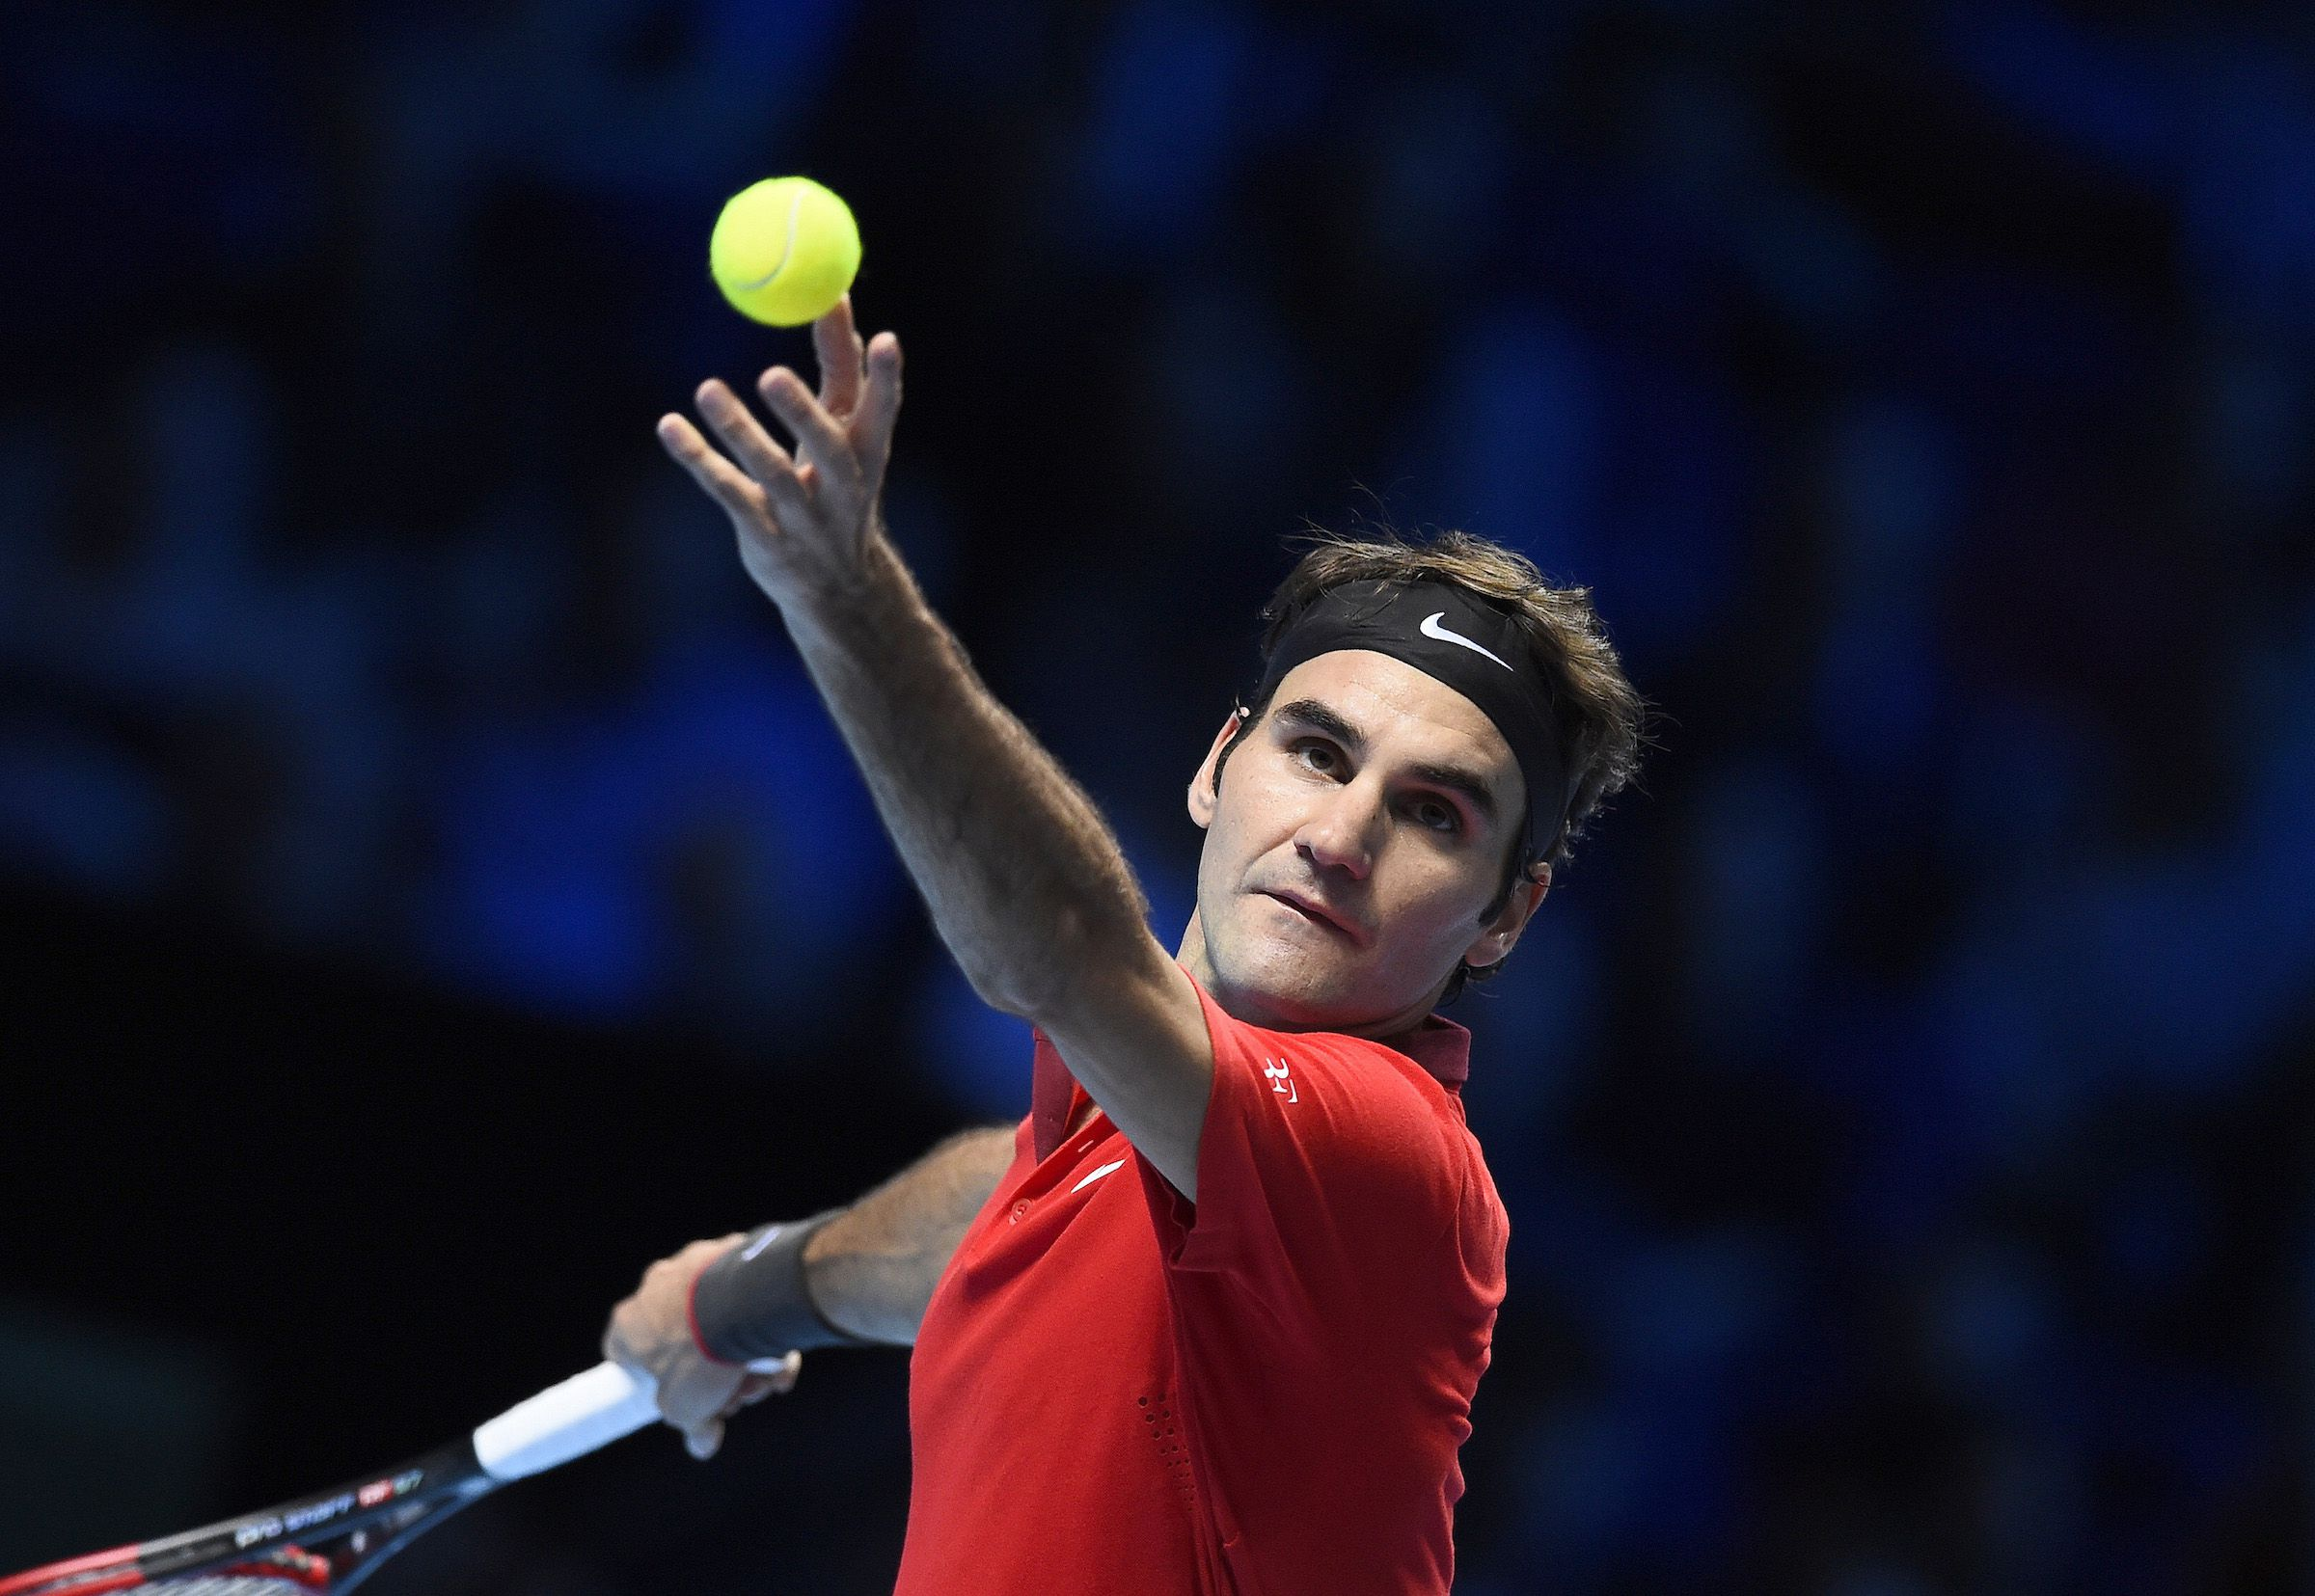 Roger Federer of Switzerland serves during his men's singles tennis match against Milos Raonic of Canada at the ATP World Tour Finals at the O2 Arena in London November 9, 2014. REUTERS/Dylan Martinez (BRITAIN - Tags: SPORT TENNIS) - RTR4DH9C